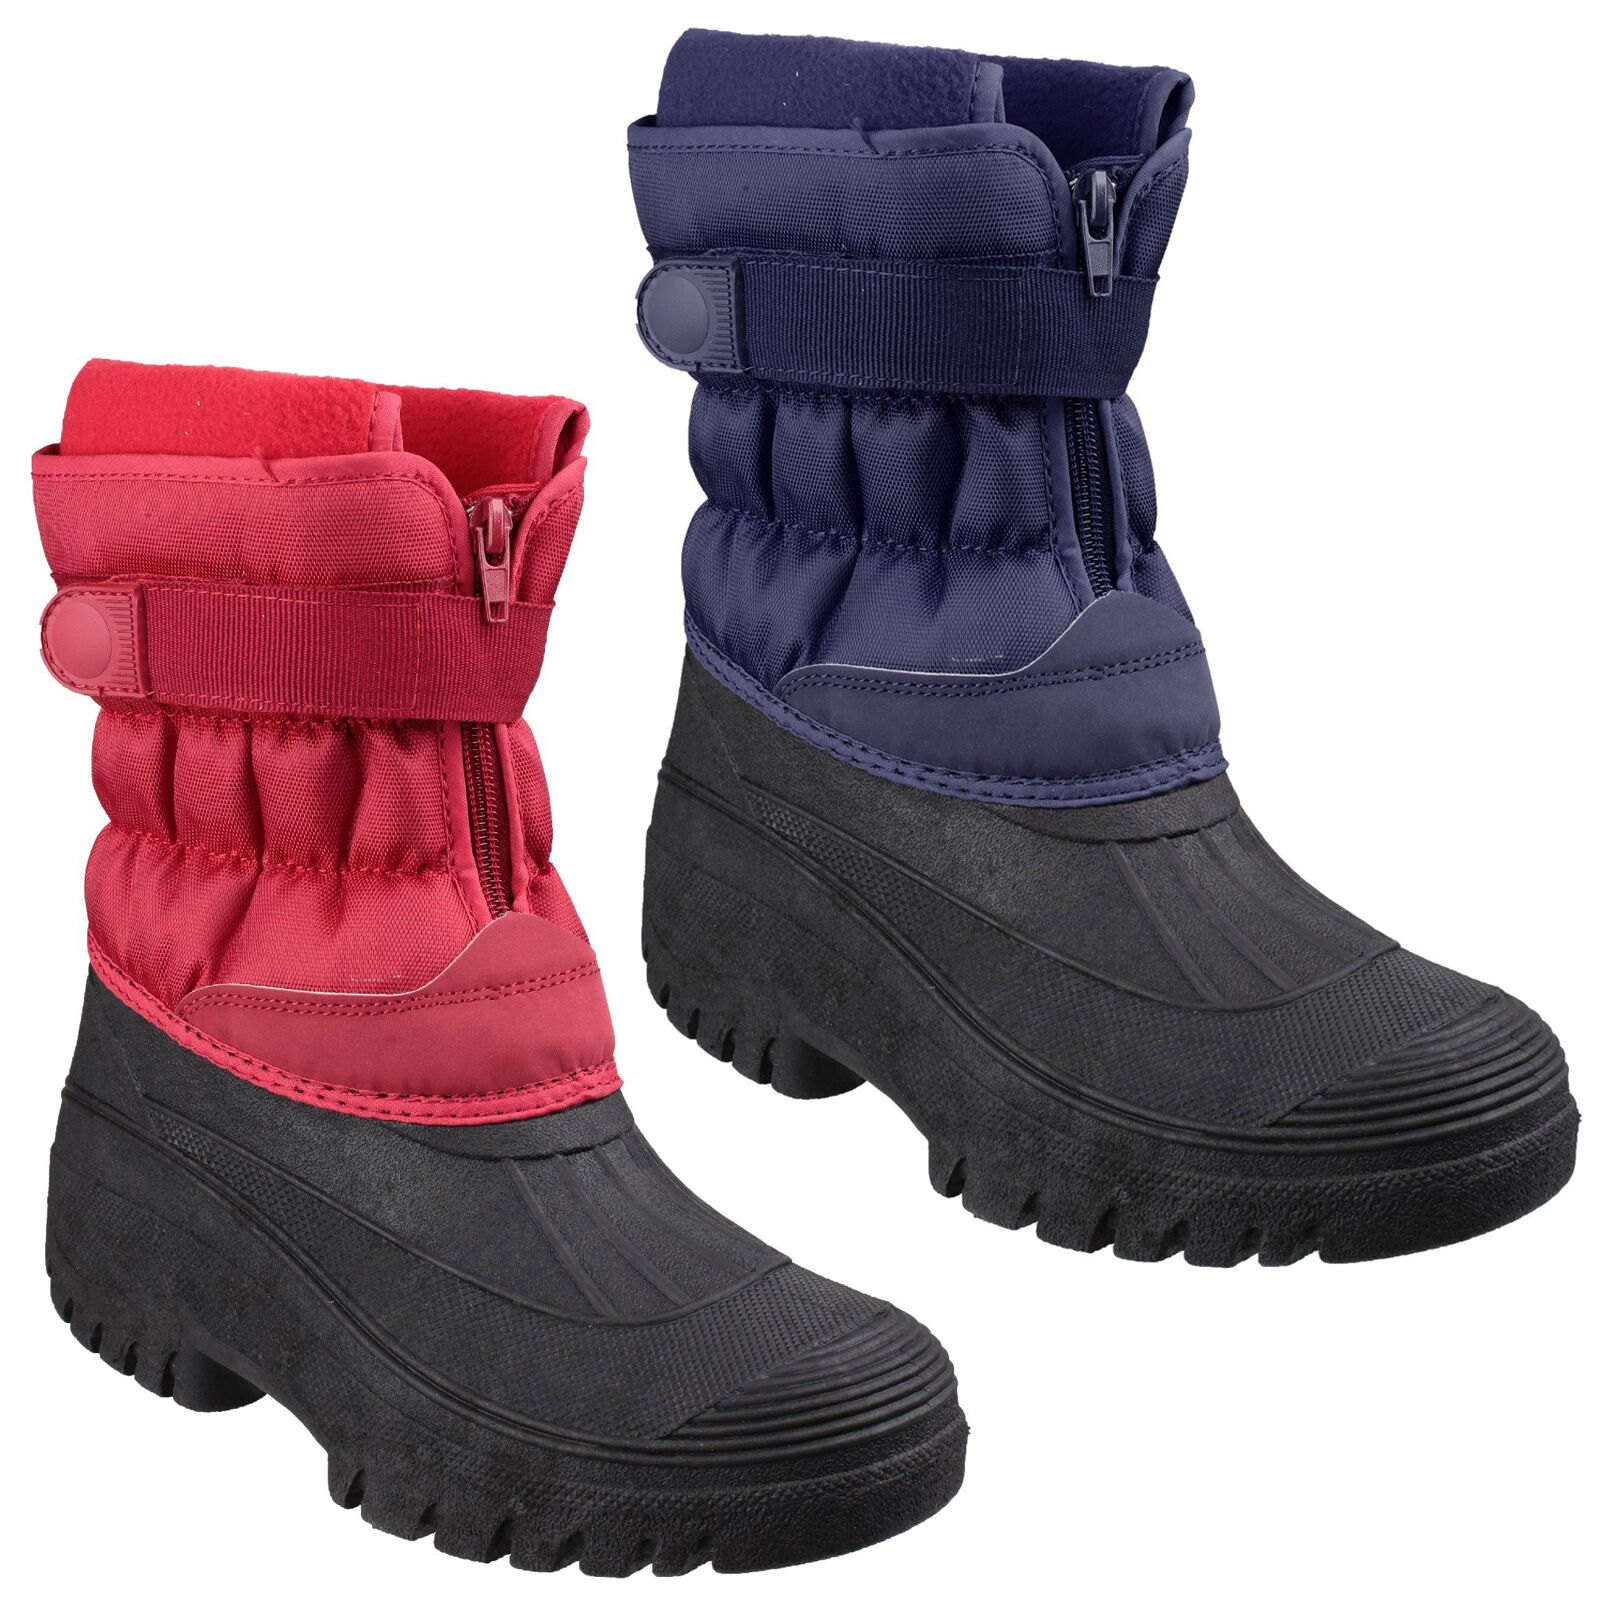 3ba8d6d2cde654 Cotswold Chase Touch Fastening and Zip up Mens Wellington Winter Boots  UK7-12